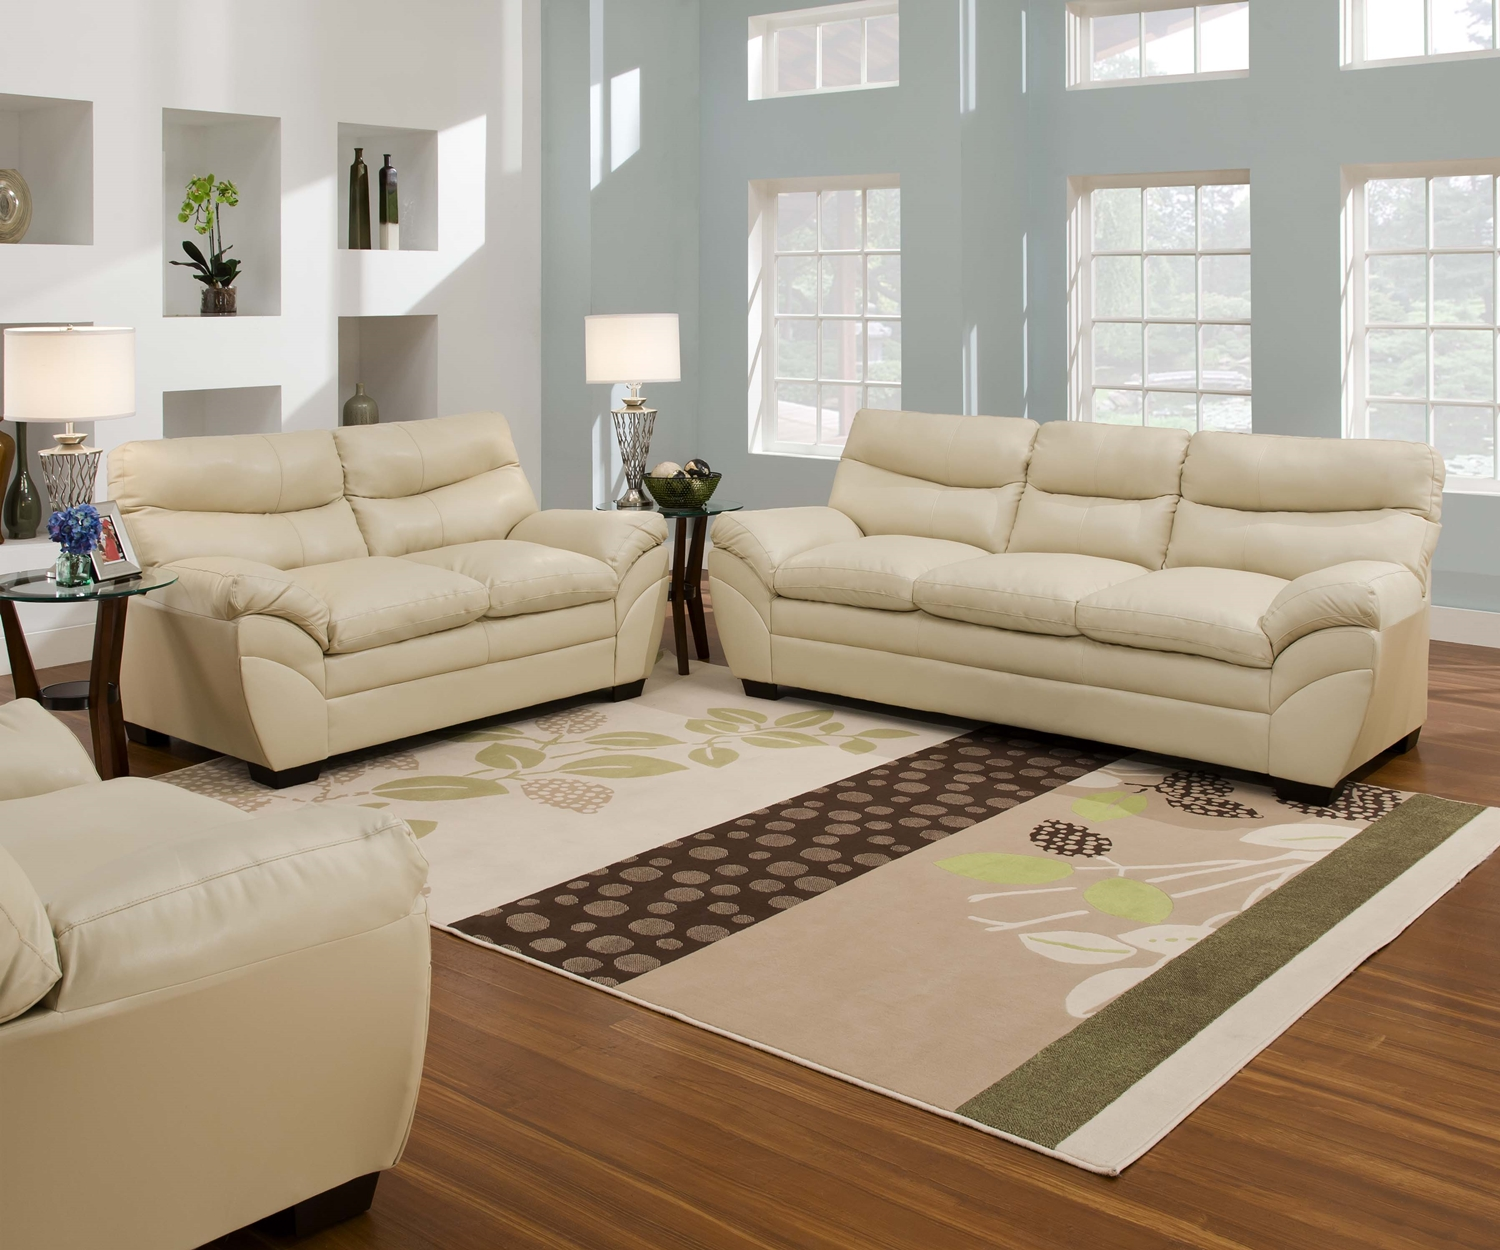 Cream living room furniture modern house for Drawing room furniture